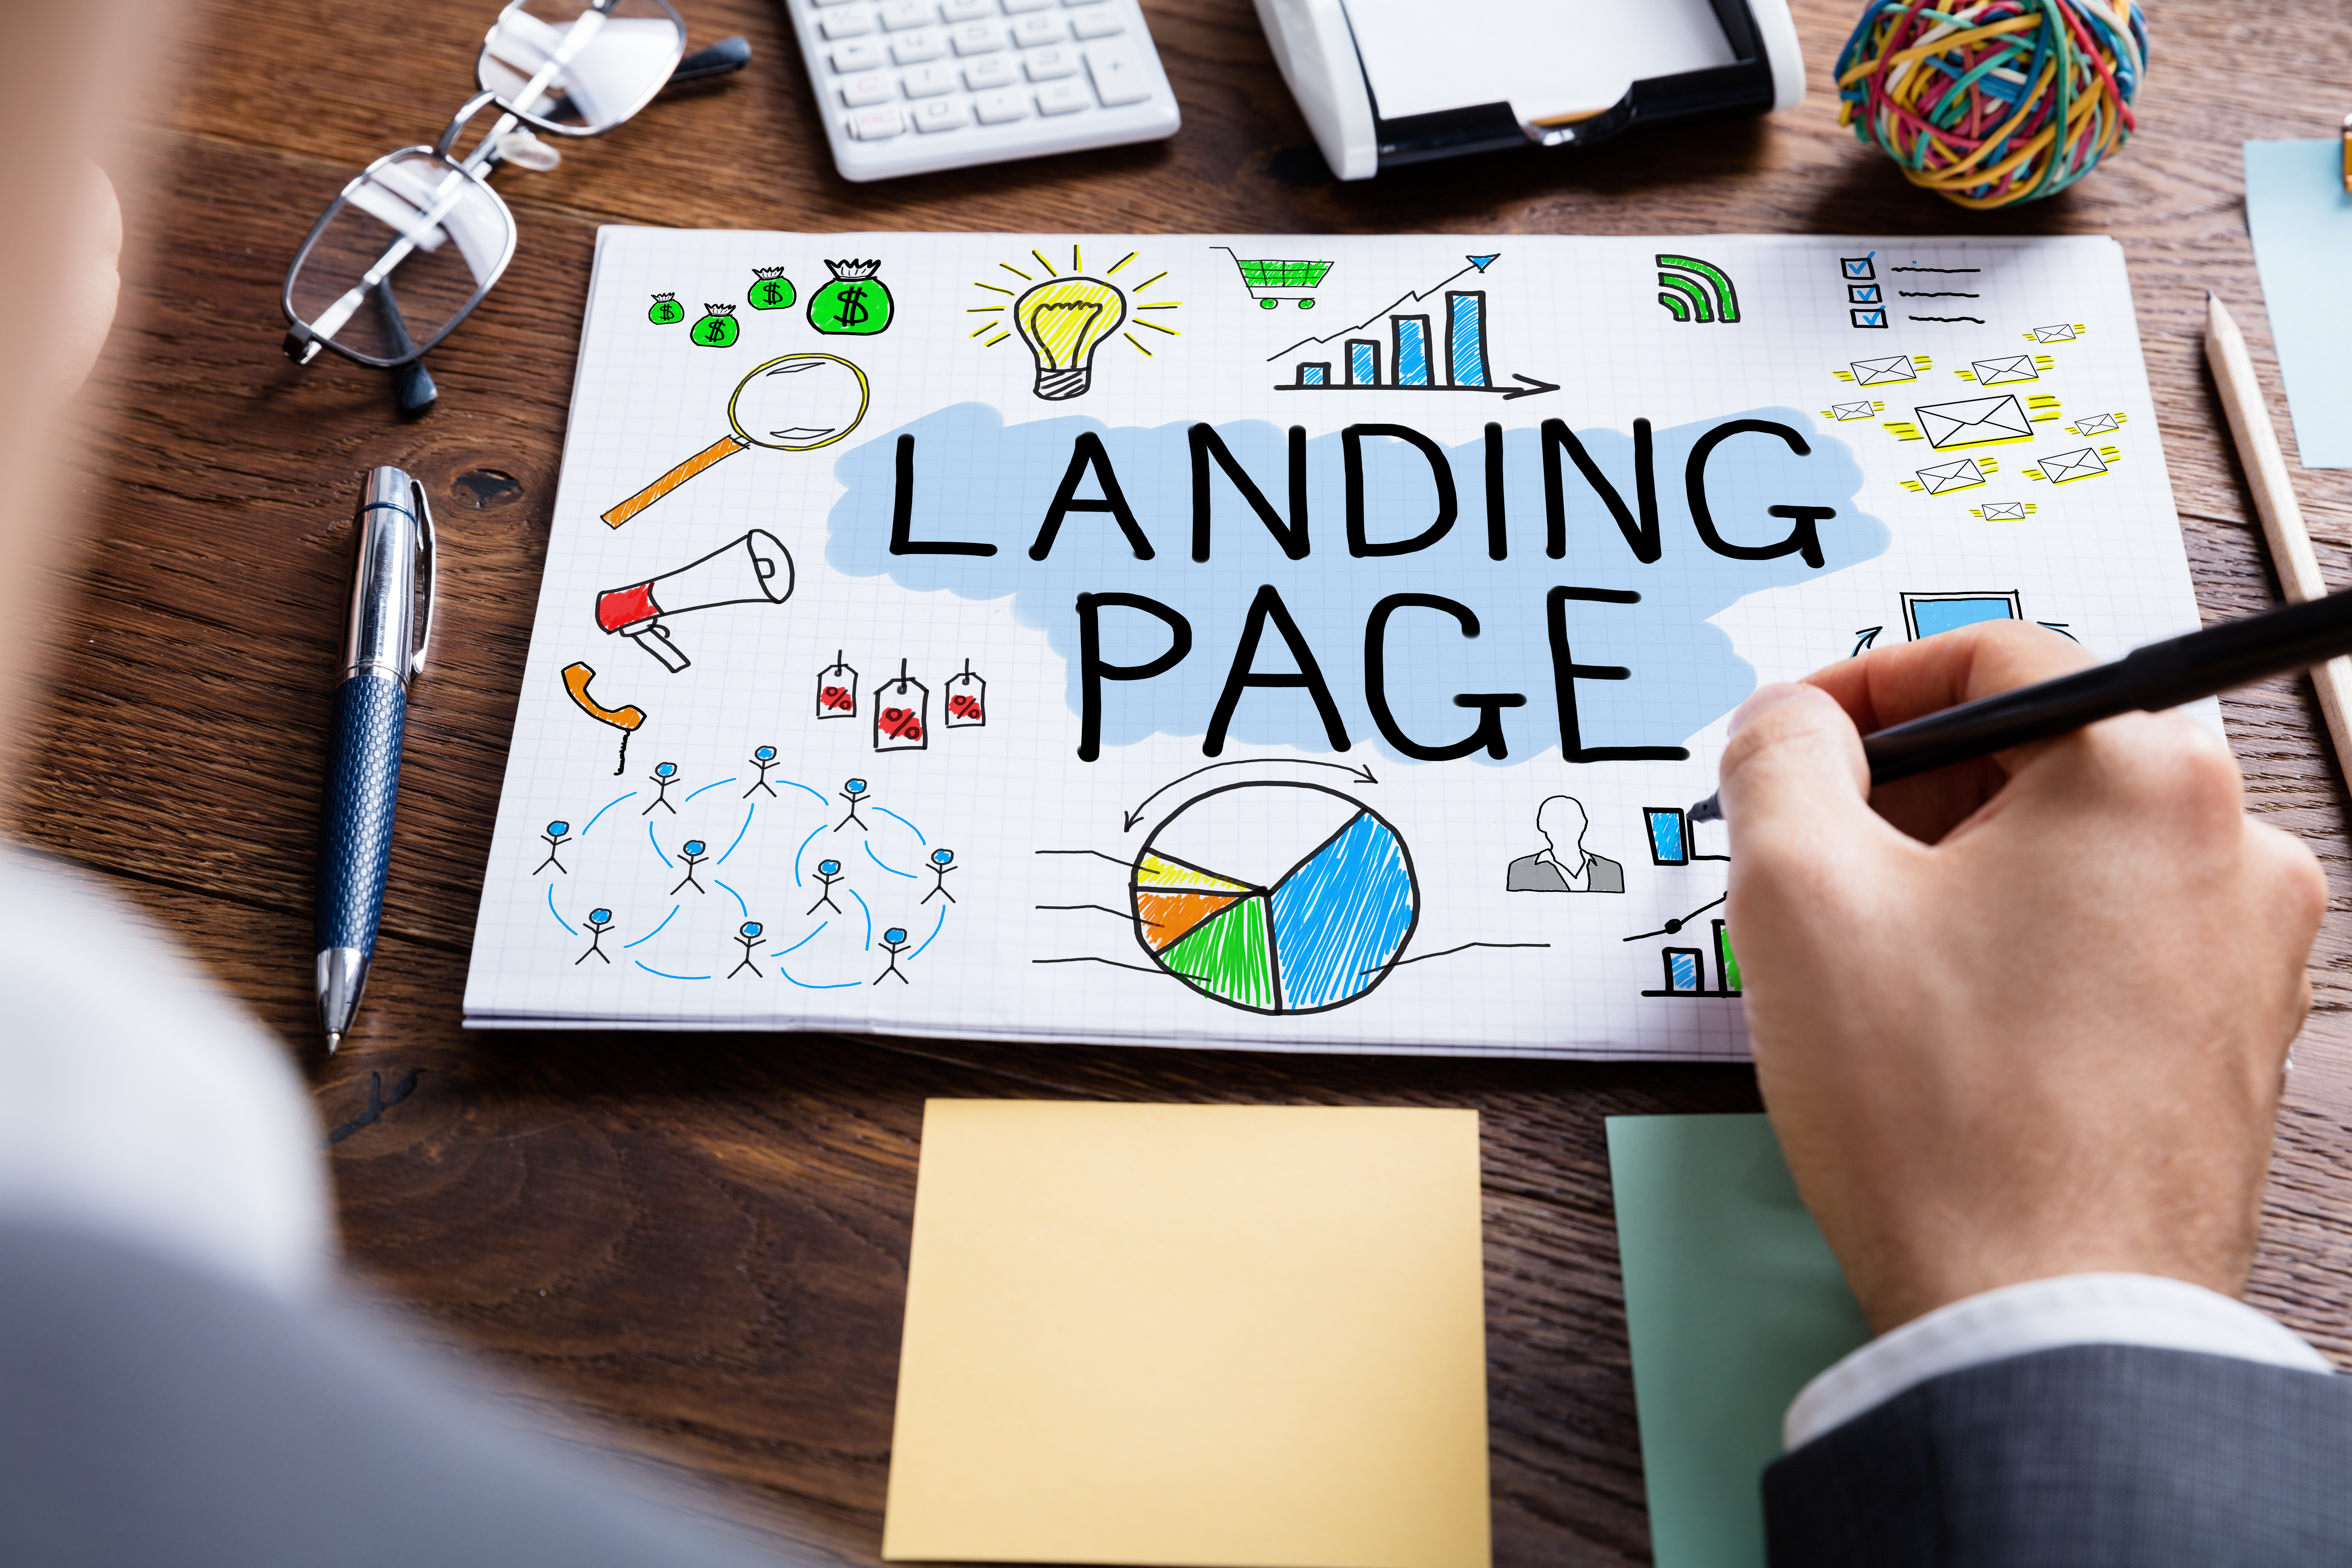 10 Characteristics of a High Converting Landing Page